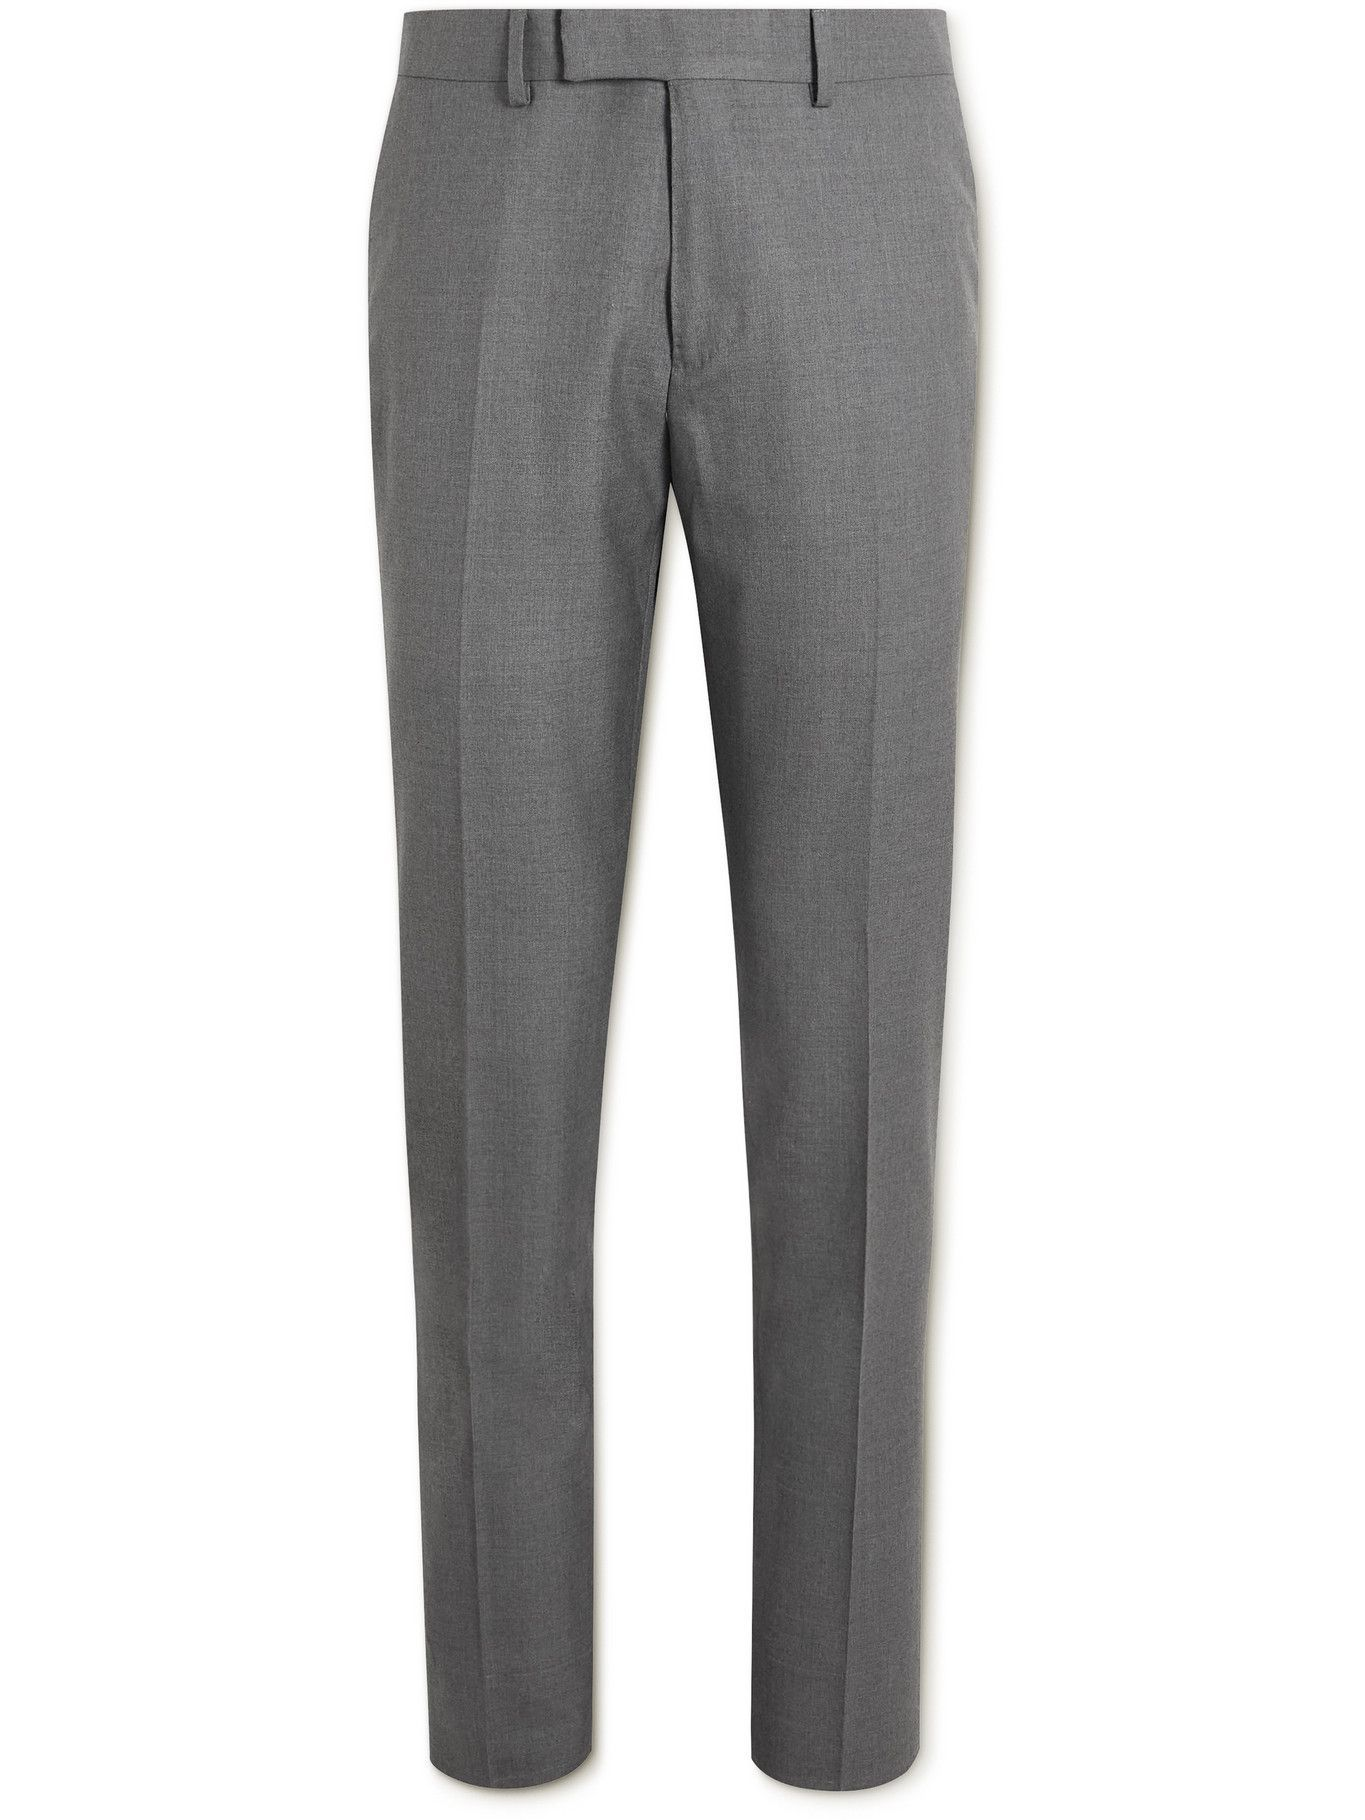 DUNHILL - Mayfair Super 150s Wool Suit Trousers - Gray